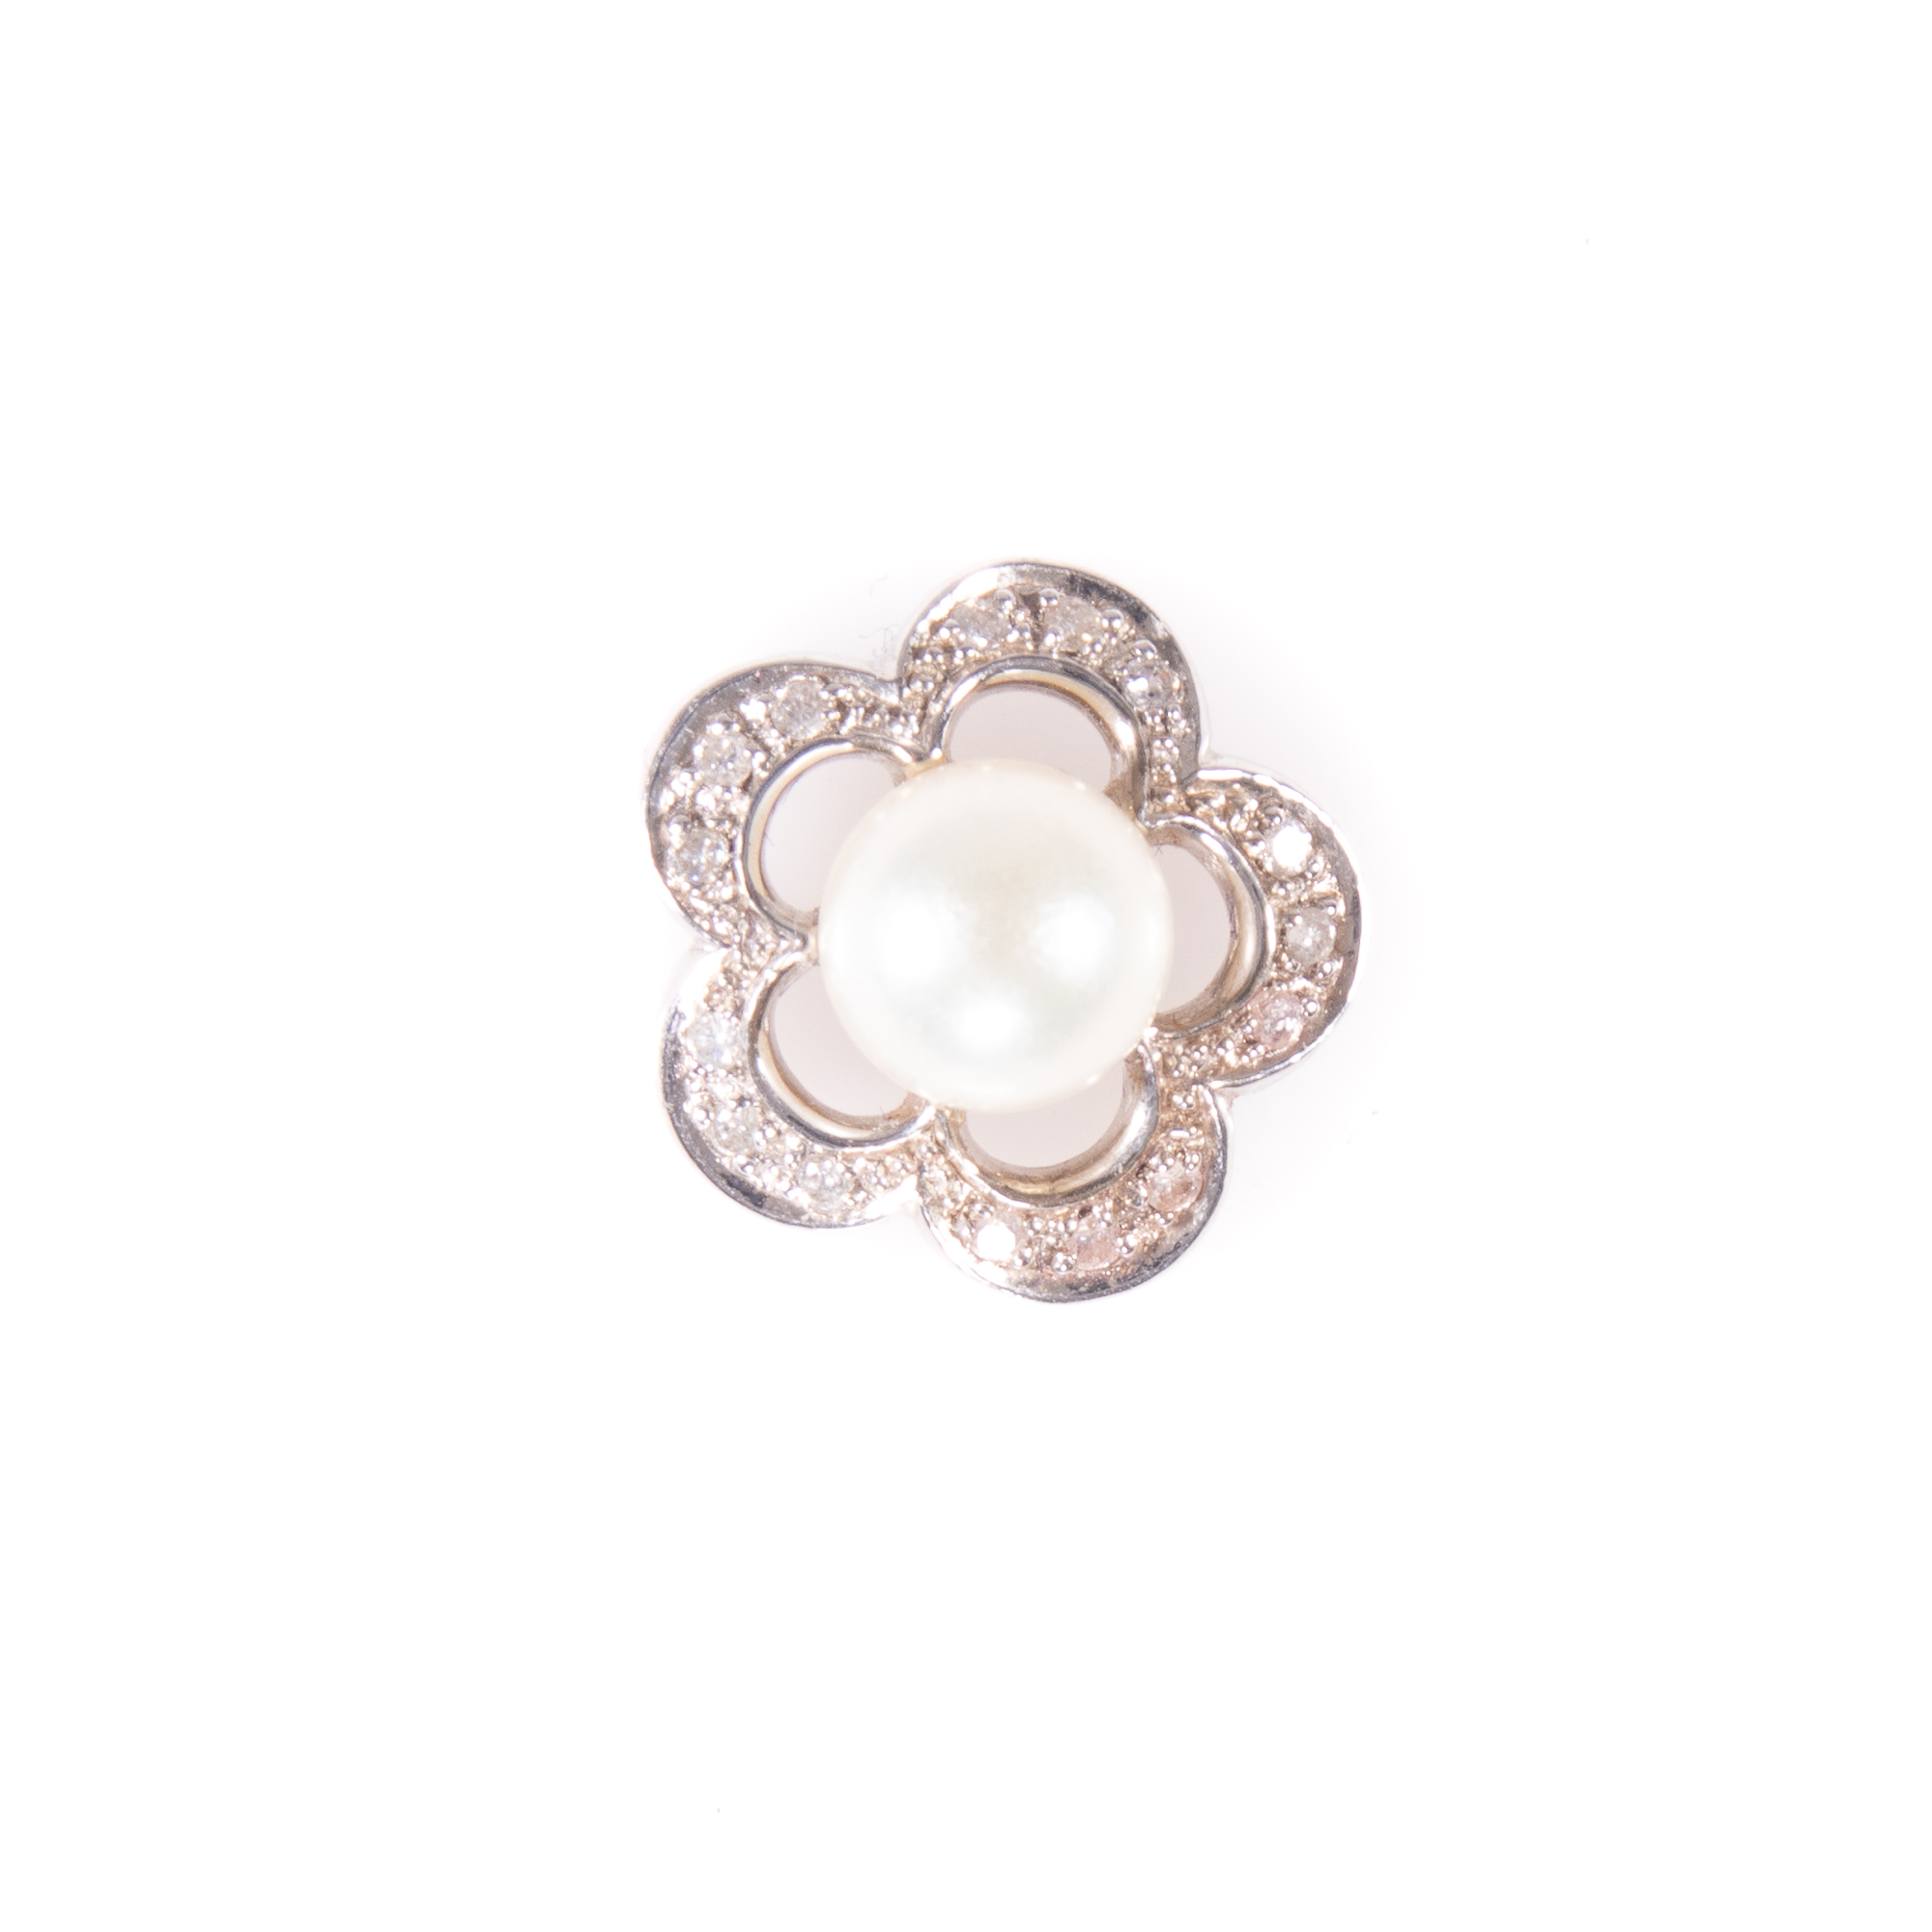 18ct White Gold Diamond & Pearl Floral Pendant - Image 2 of 6